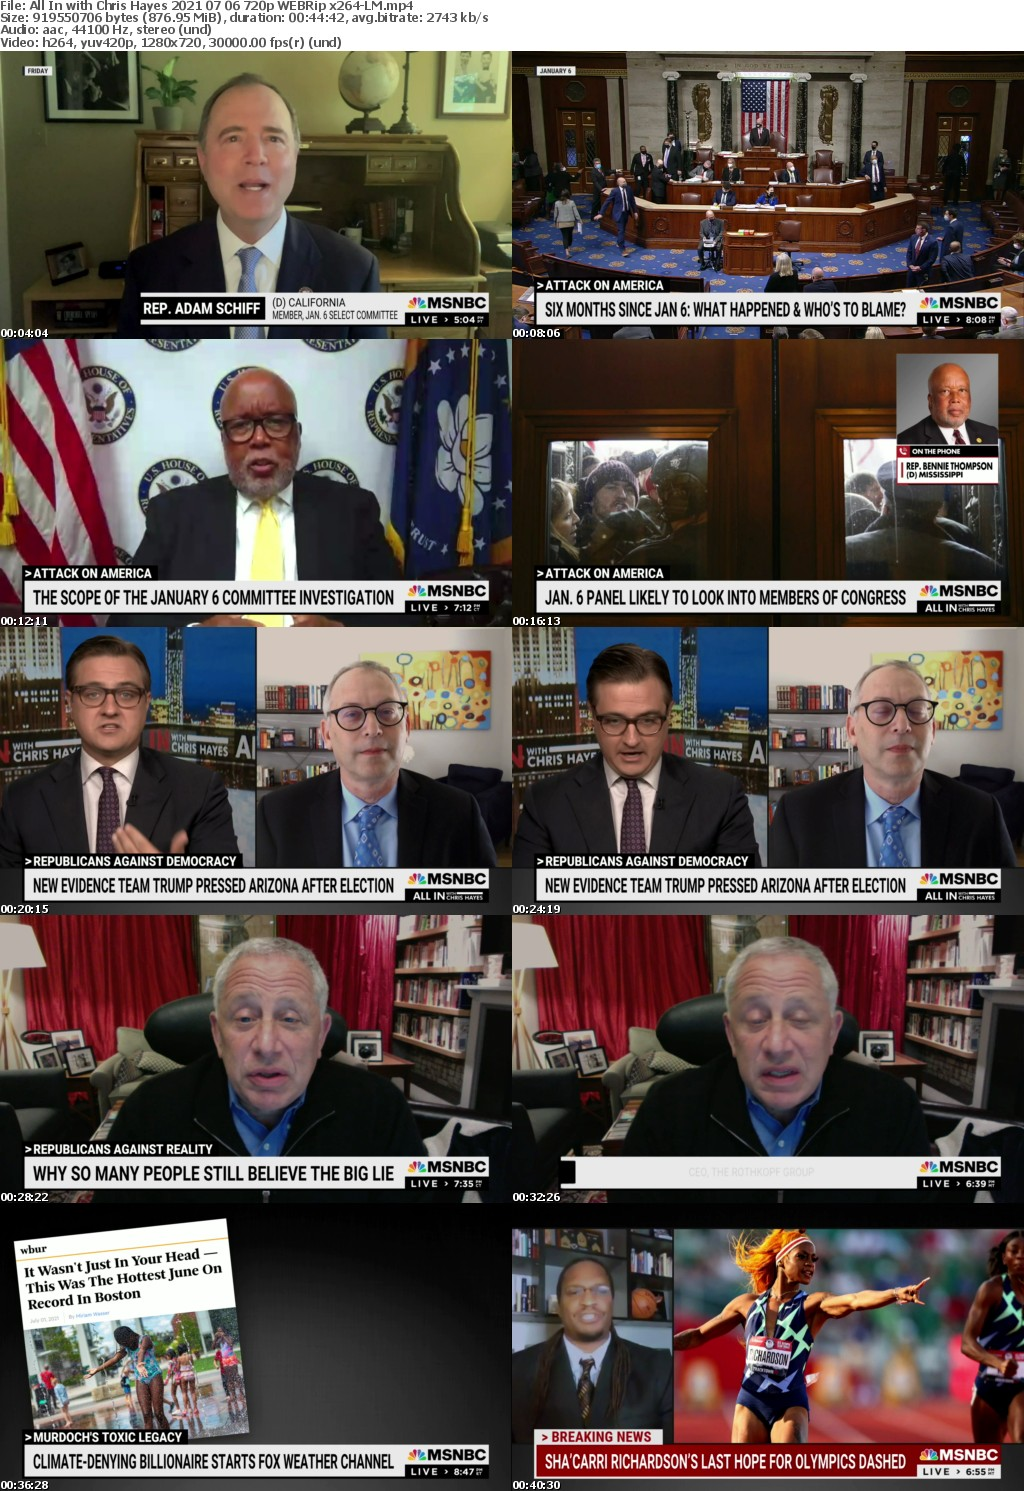 All In with Chris Hayes 2021 07 06 720p WEBRip x264-LM